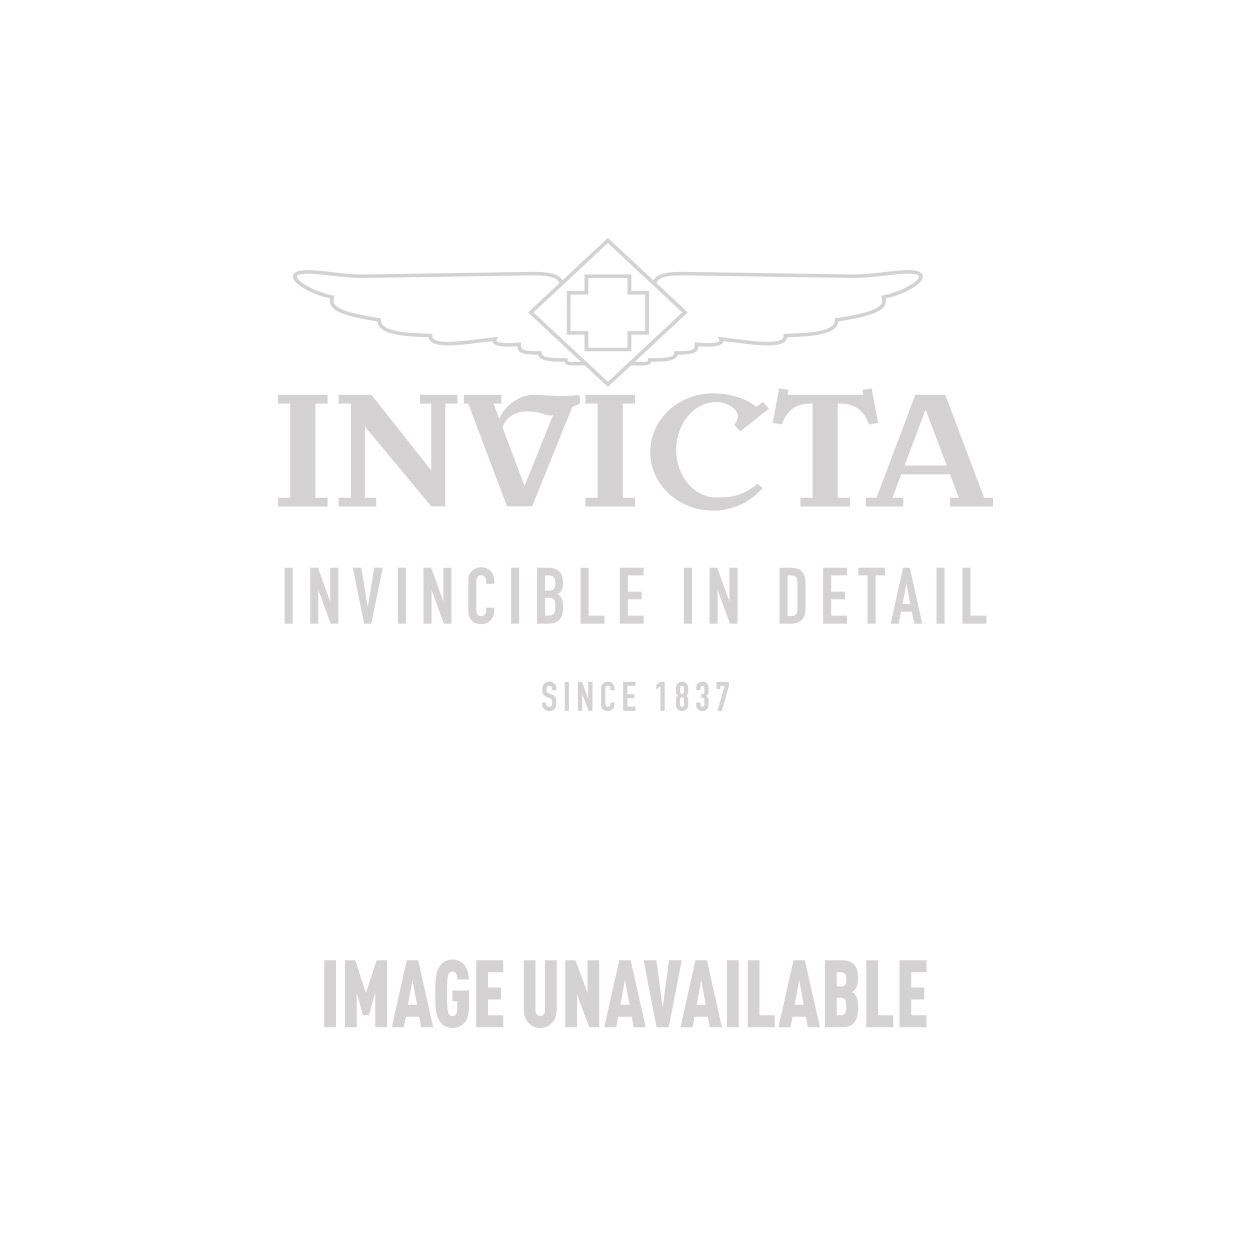 Invicta 21cm Men's Bracelets in Rhodium - Model J0011